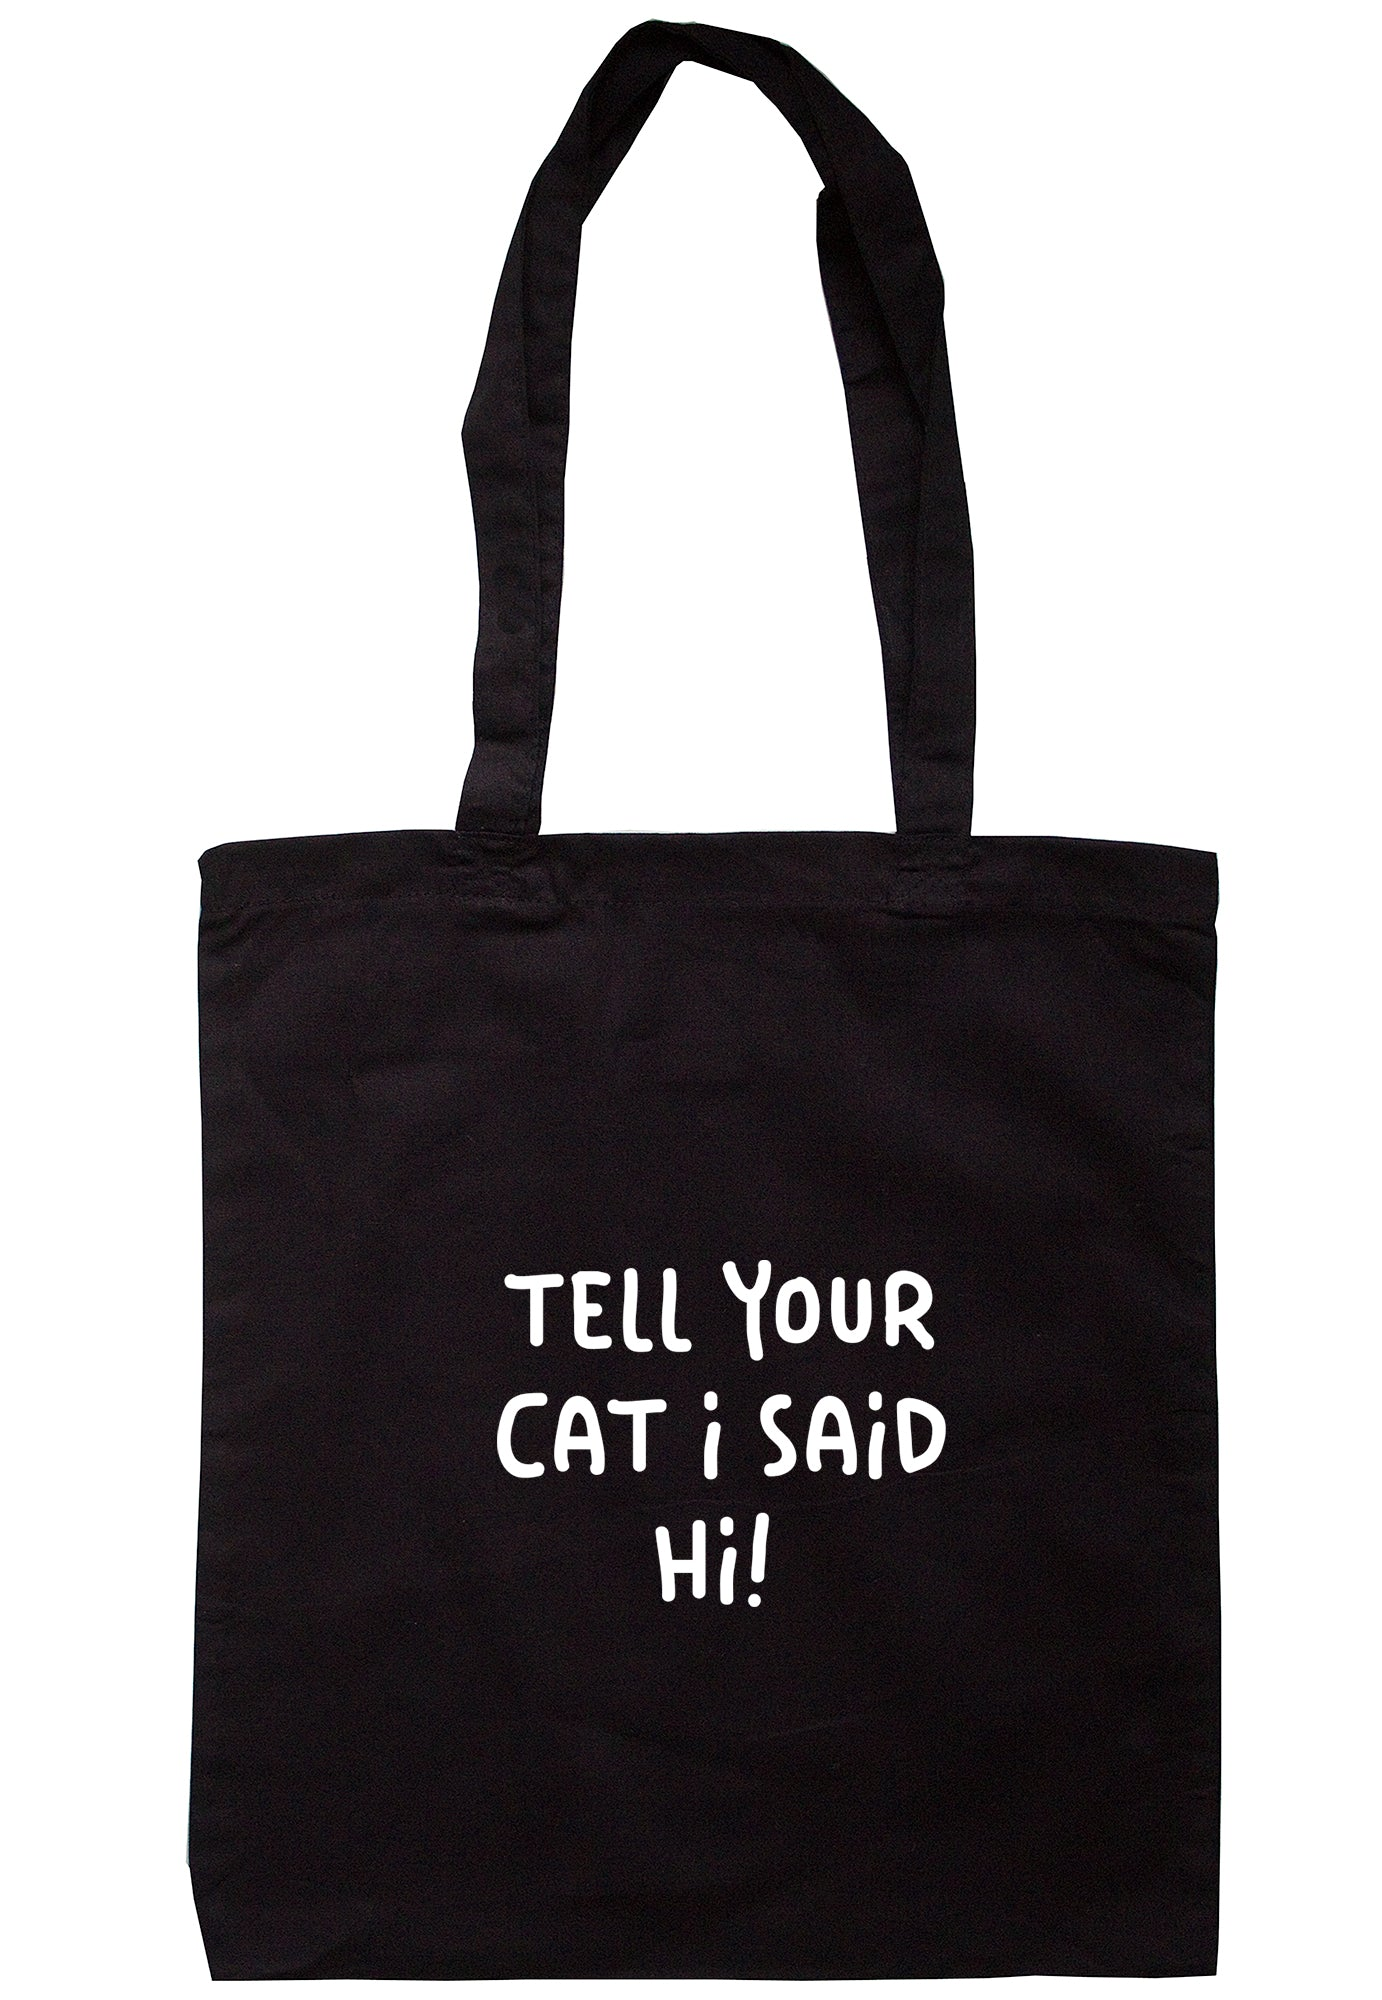 Tell Your Cat I Said Hi! Tote Bag S1185 - Illustrated Identity Ltd.